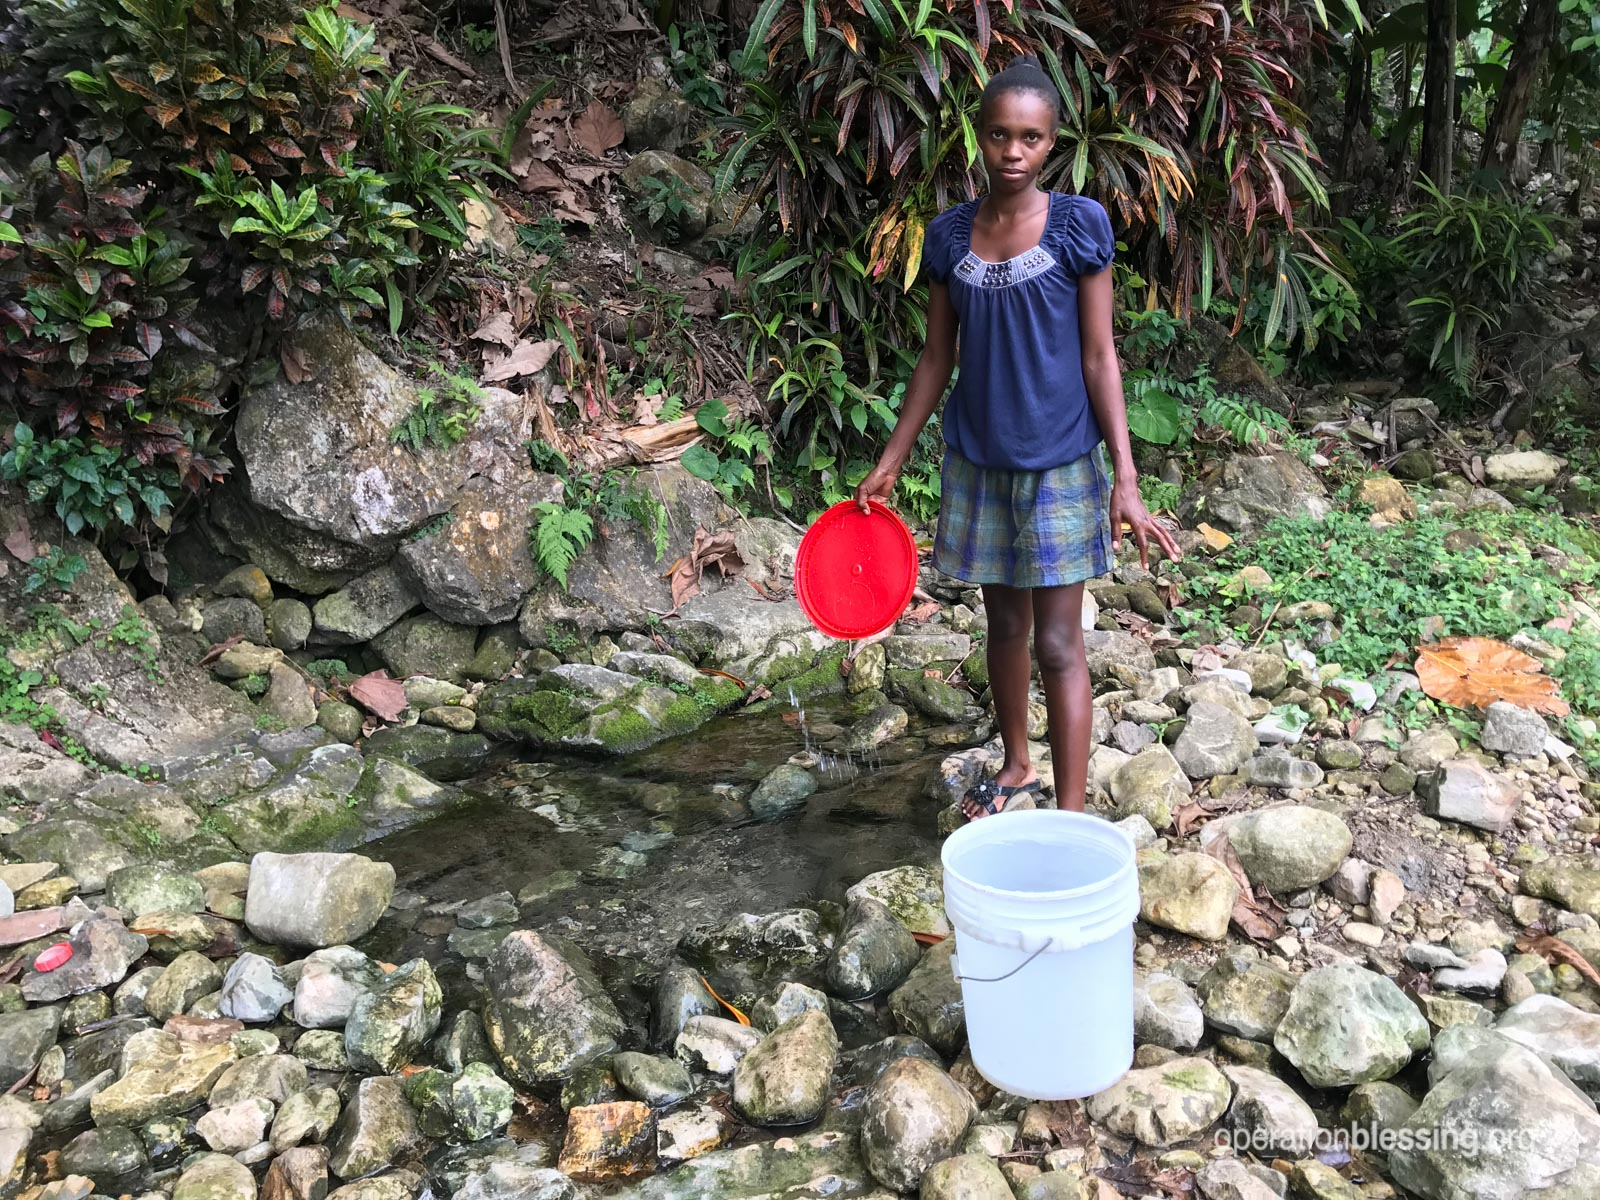 A Haitian village woman collects unsafe water to drink.